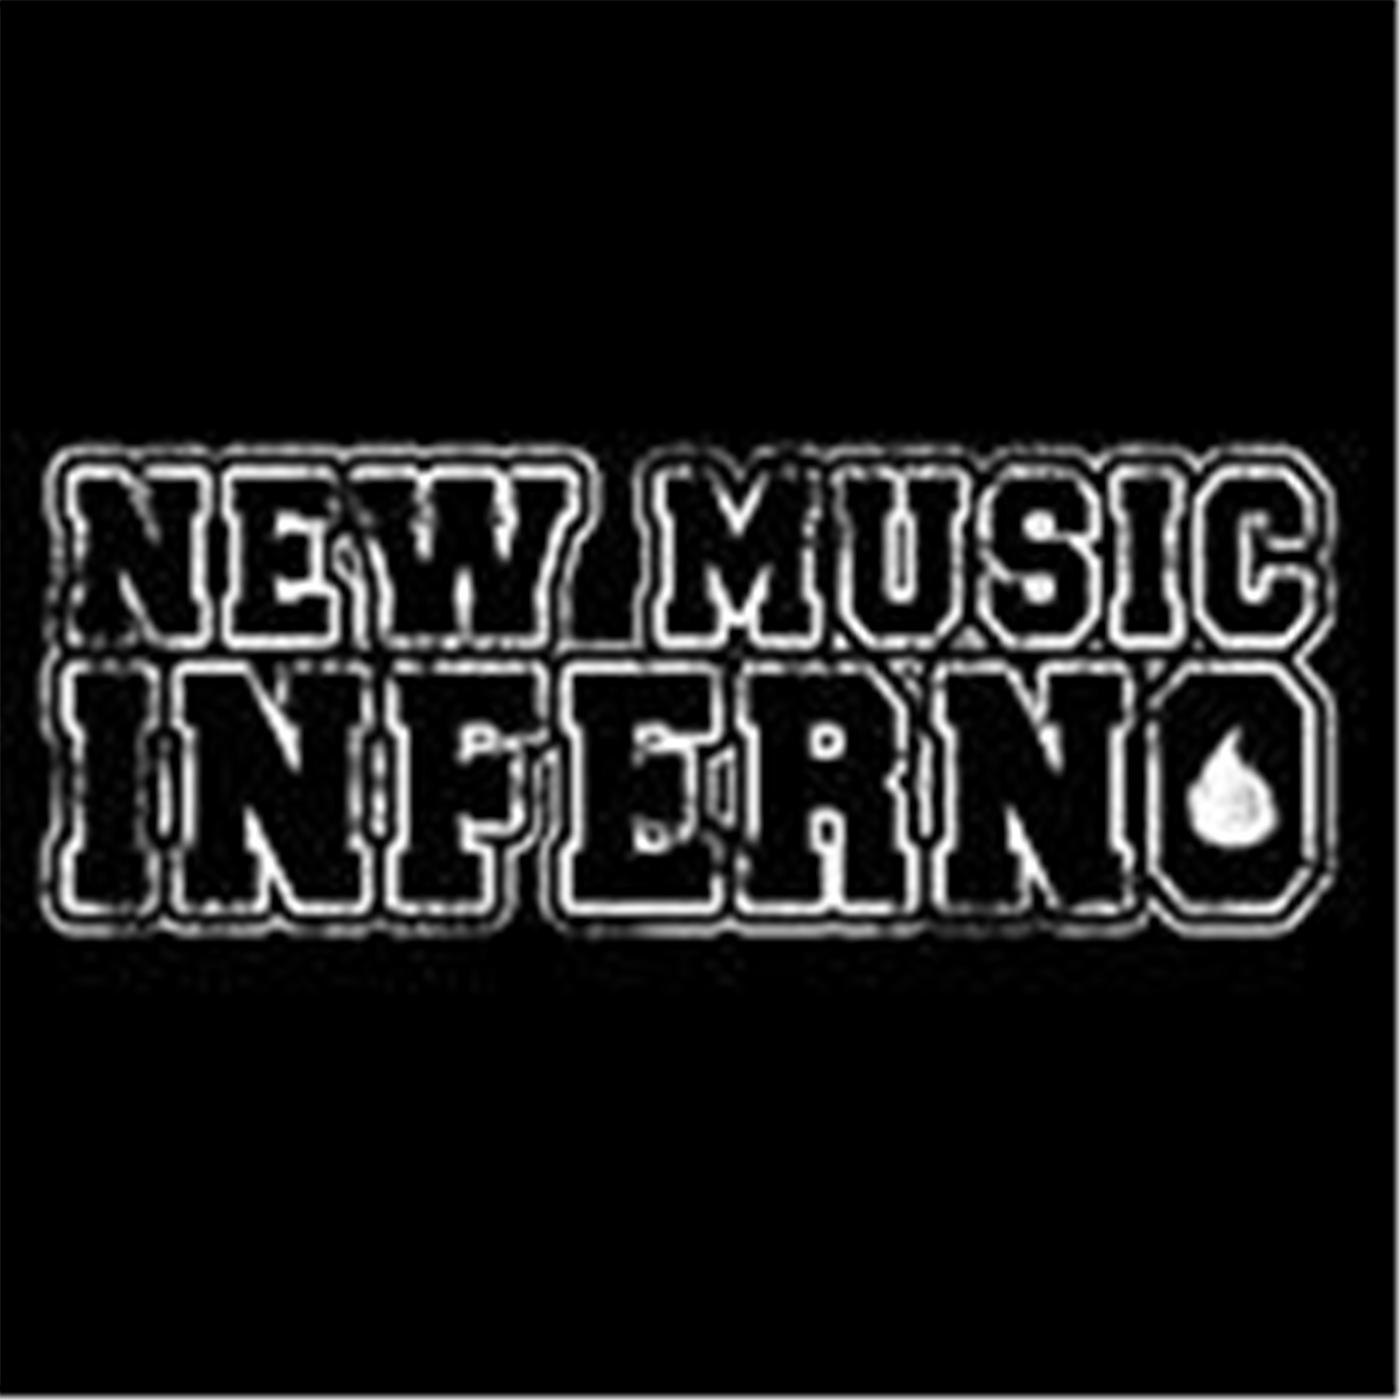 NEW MUSIC INFERNO